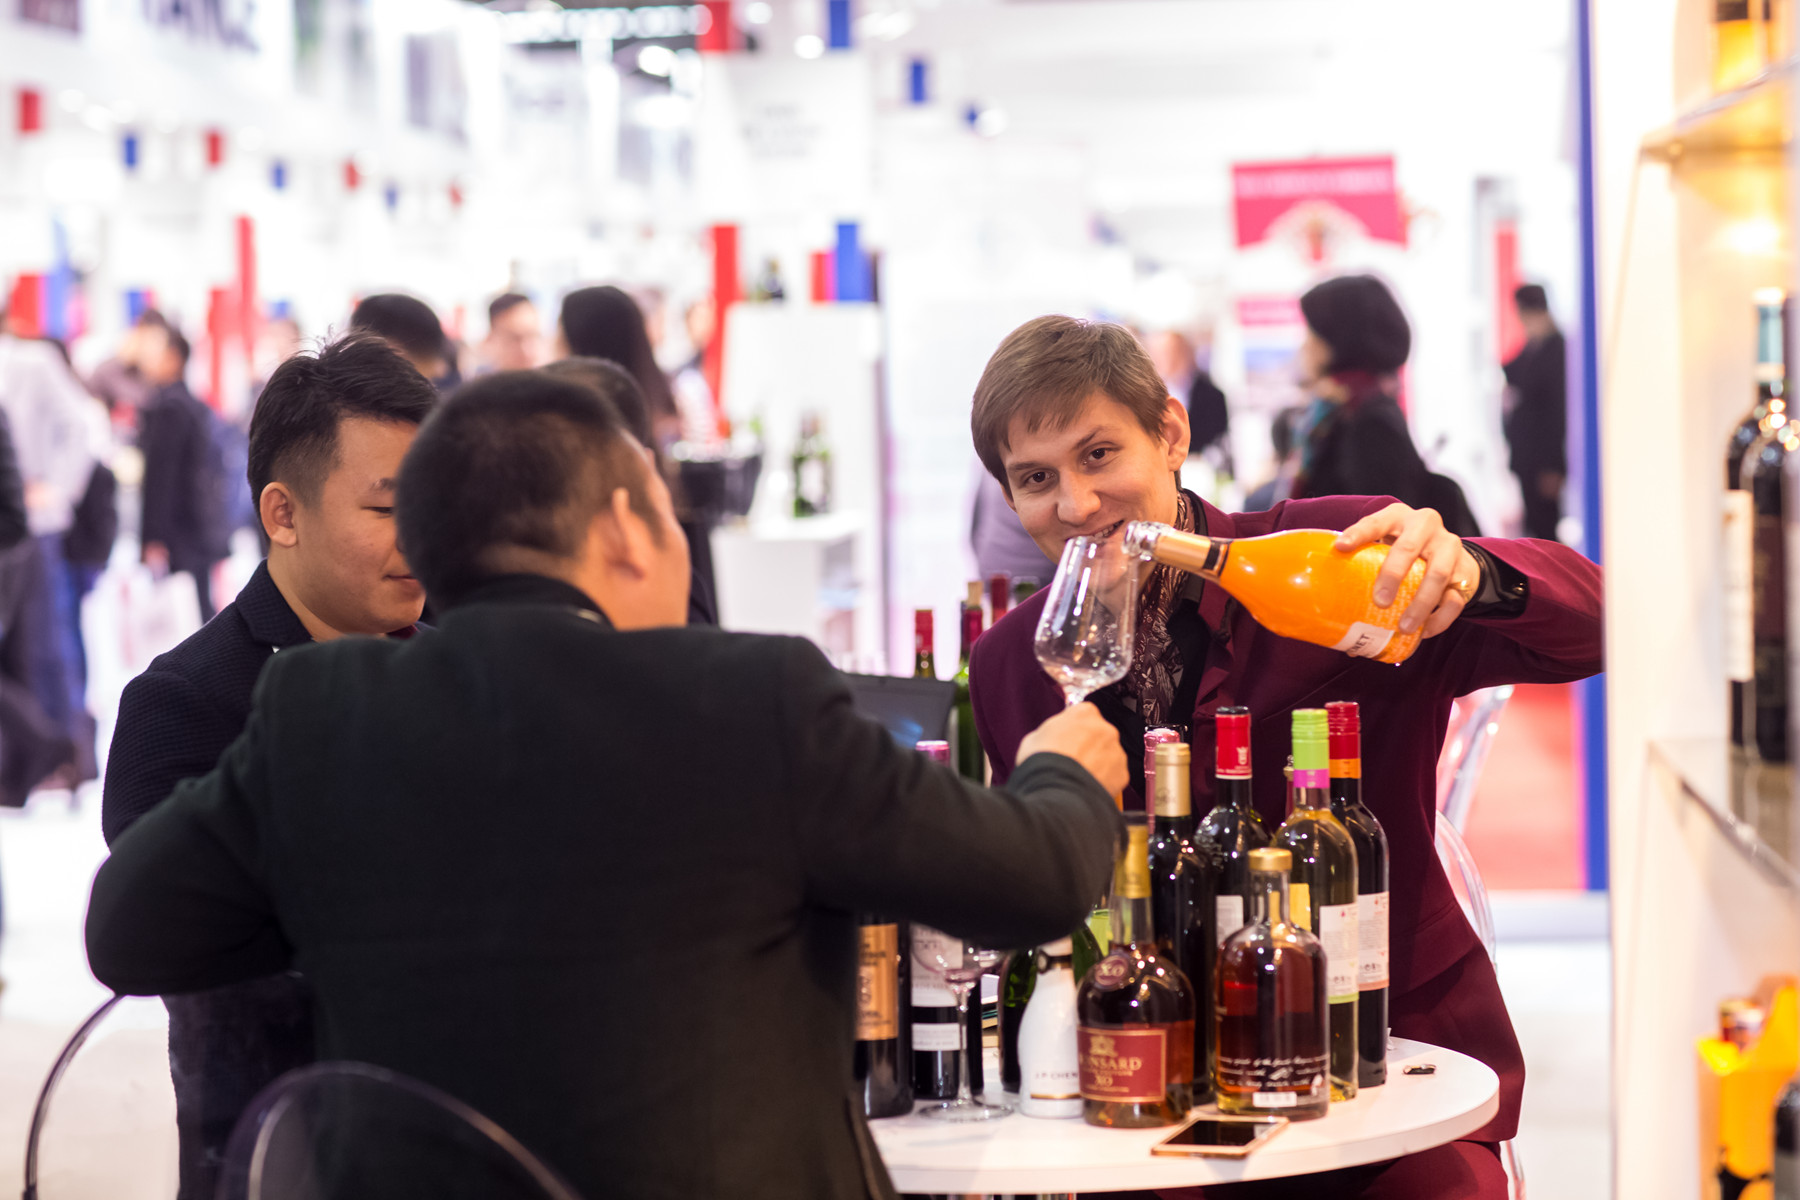 prowine-china-2019-november-prowein-exhibiting-countries-exhibitors